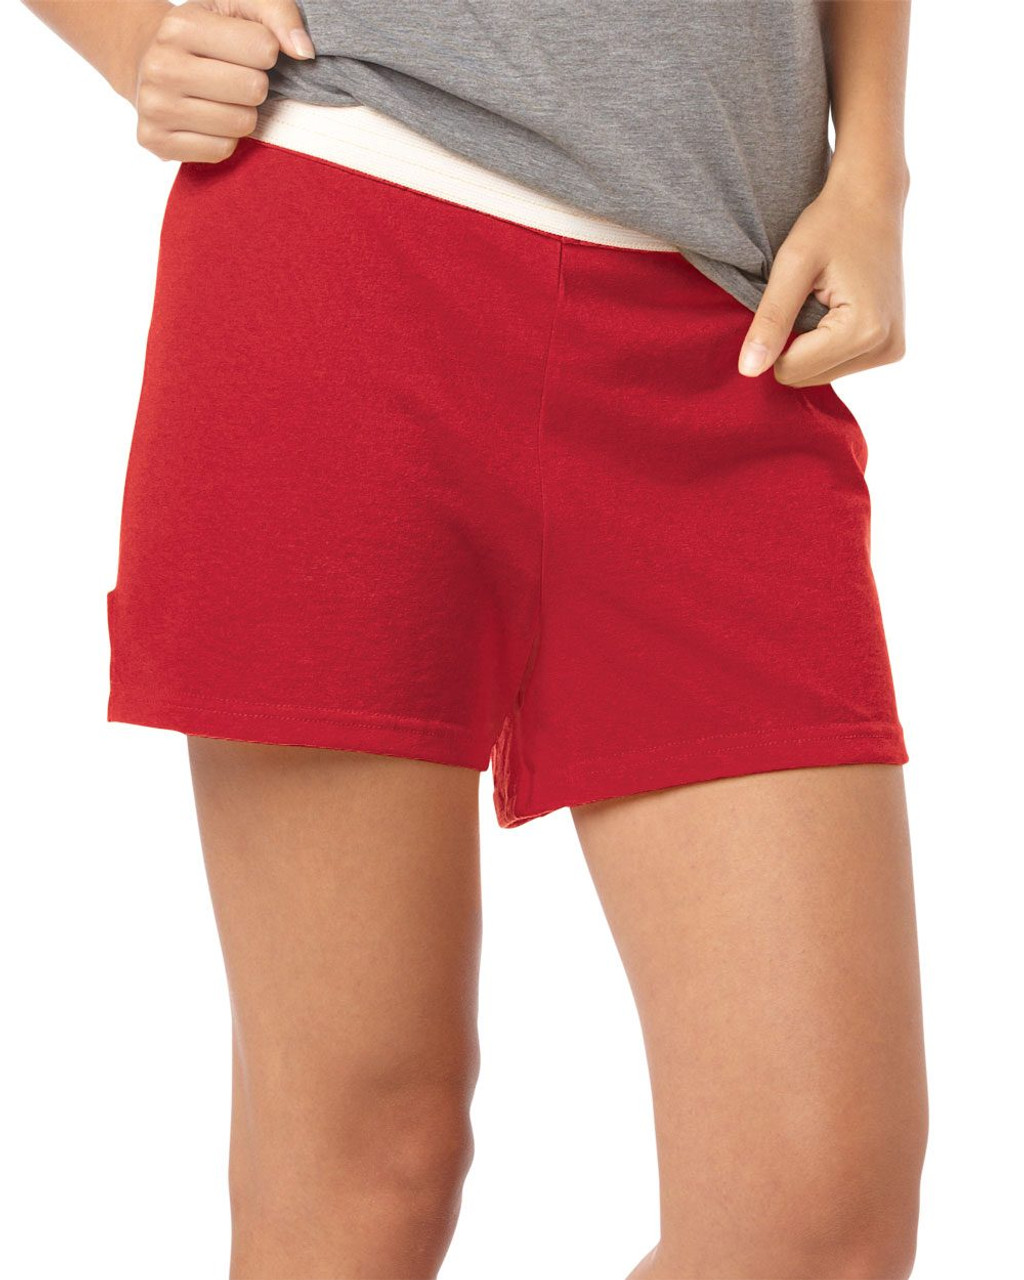 Red Ladies Cheer Shorts